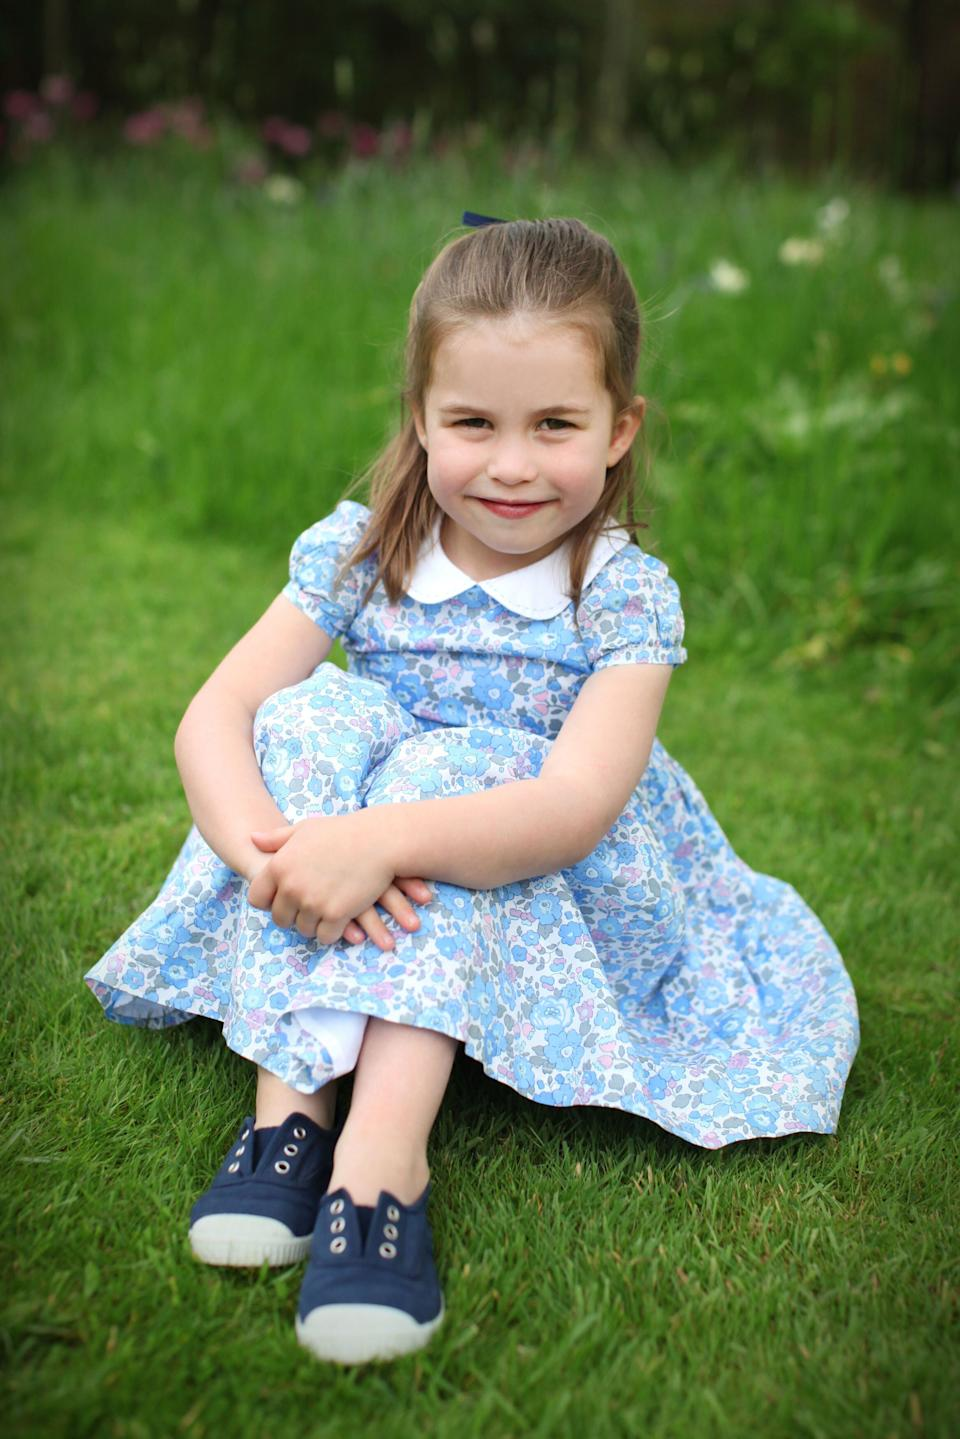 Princess Charlotte pictured at Kensington Palace in April [Photo: The Duchess of Cambridge]